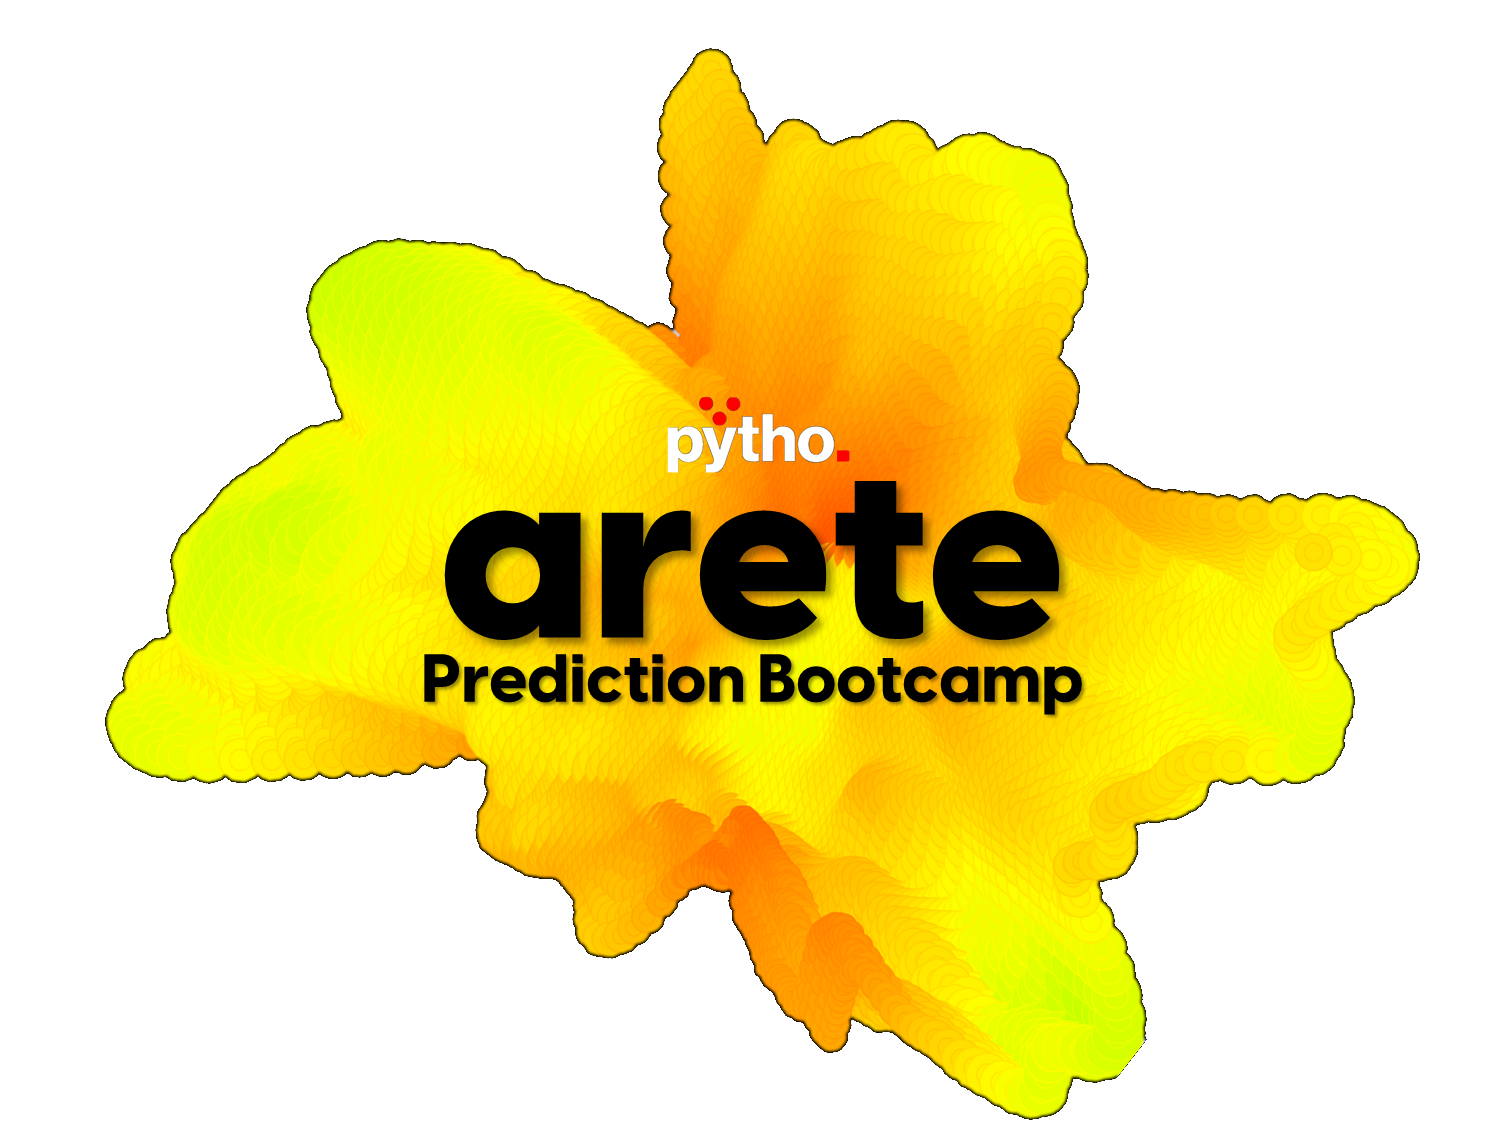 Gamified leadership lessons from ARETE by Pytho helps you master disruption